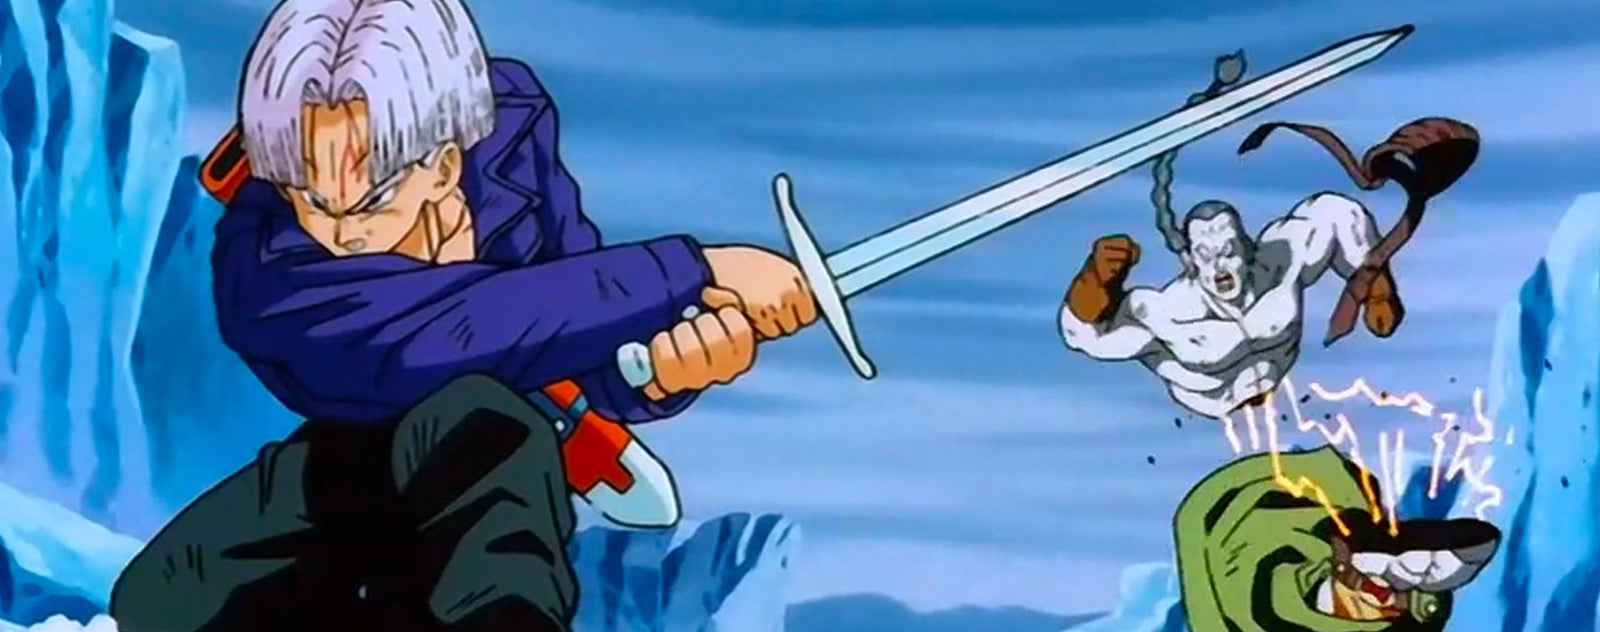 Trunks épée